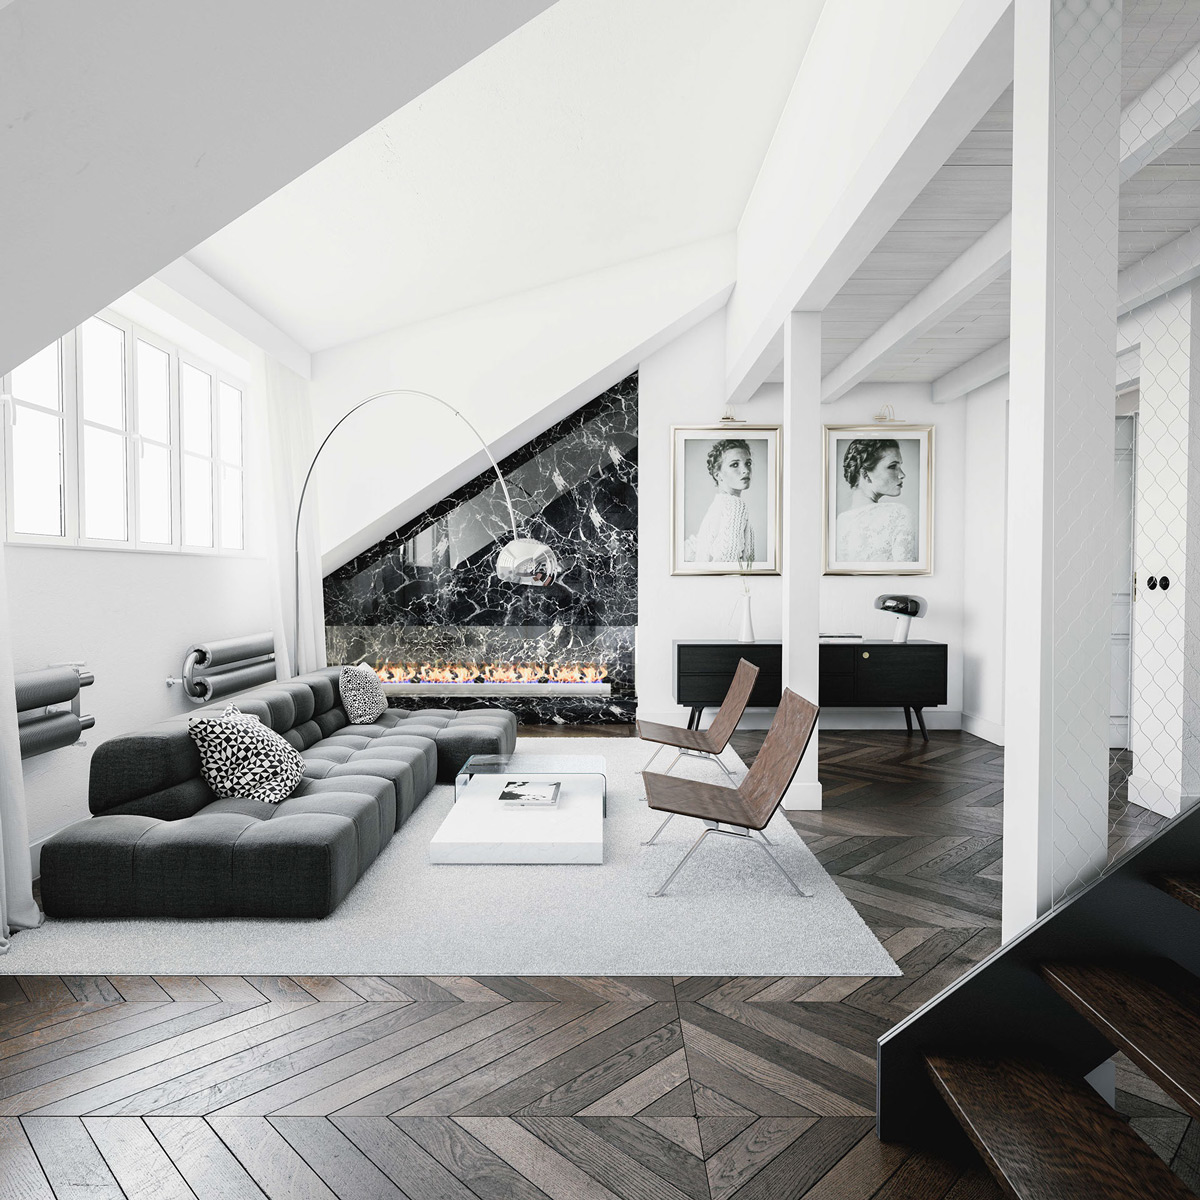 White Lounge Decor Ideas: 30 Black & White Living Rooms That Work Their Monochrome Magic